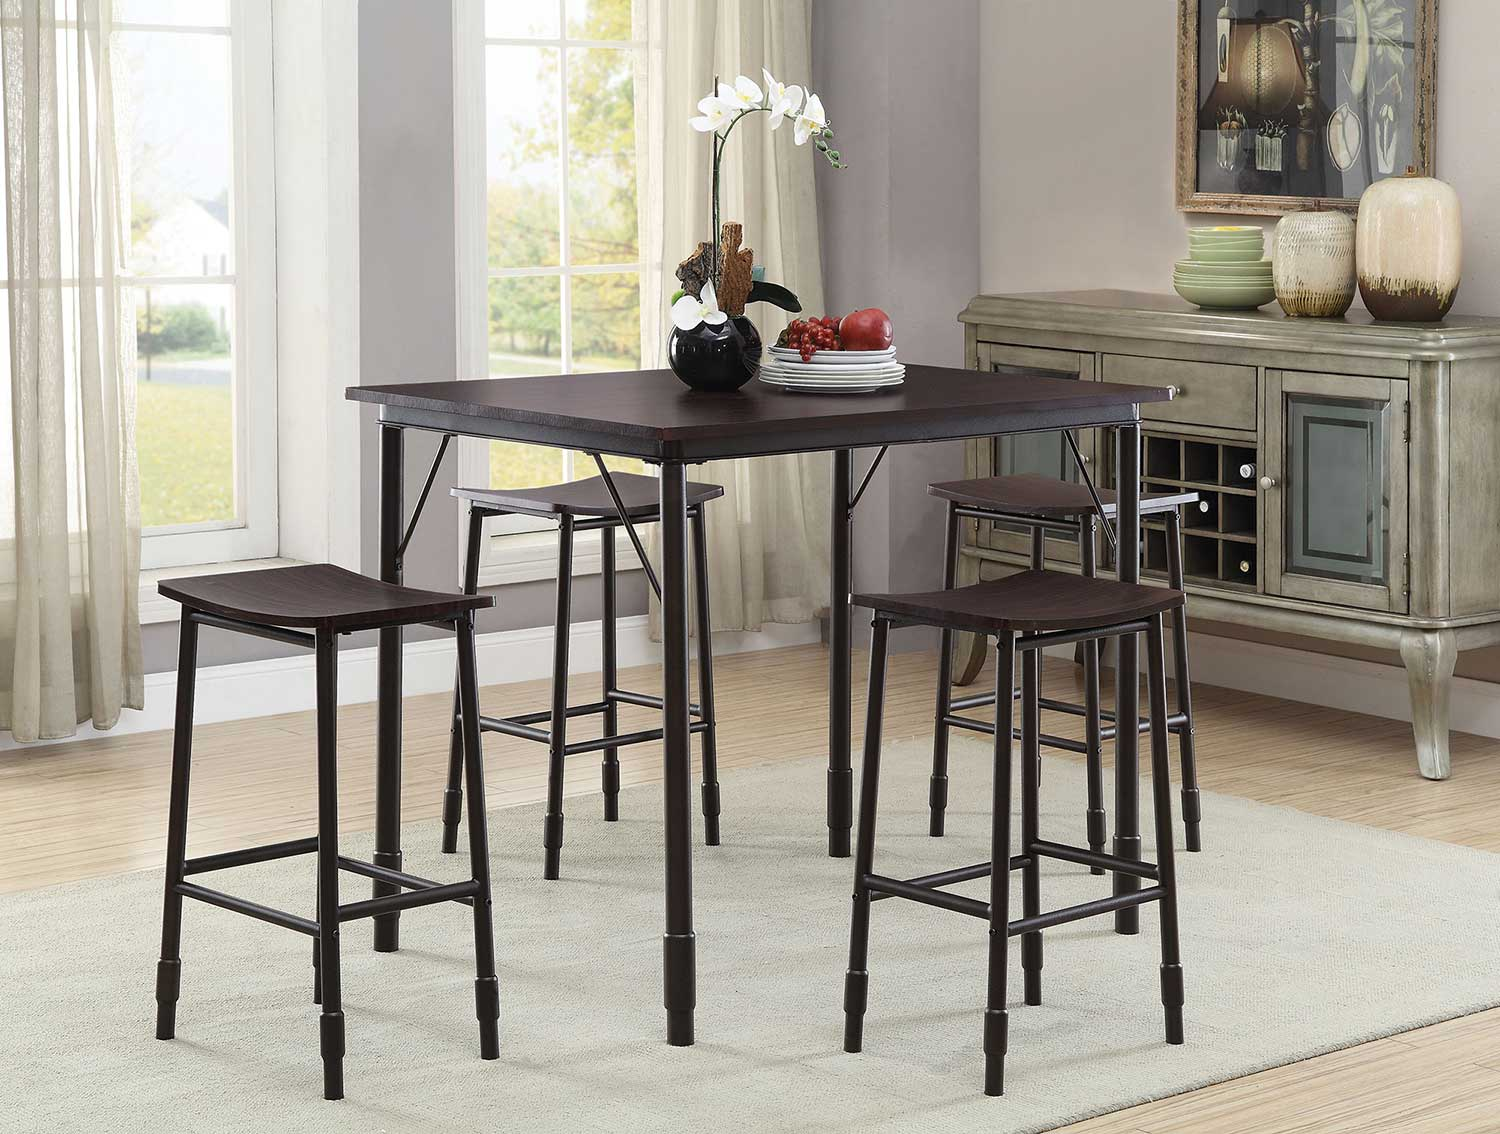 Coaster 150016 5 PC Counter Height Dining Set - Black